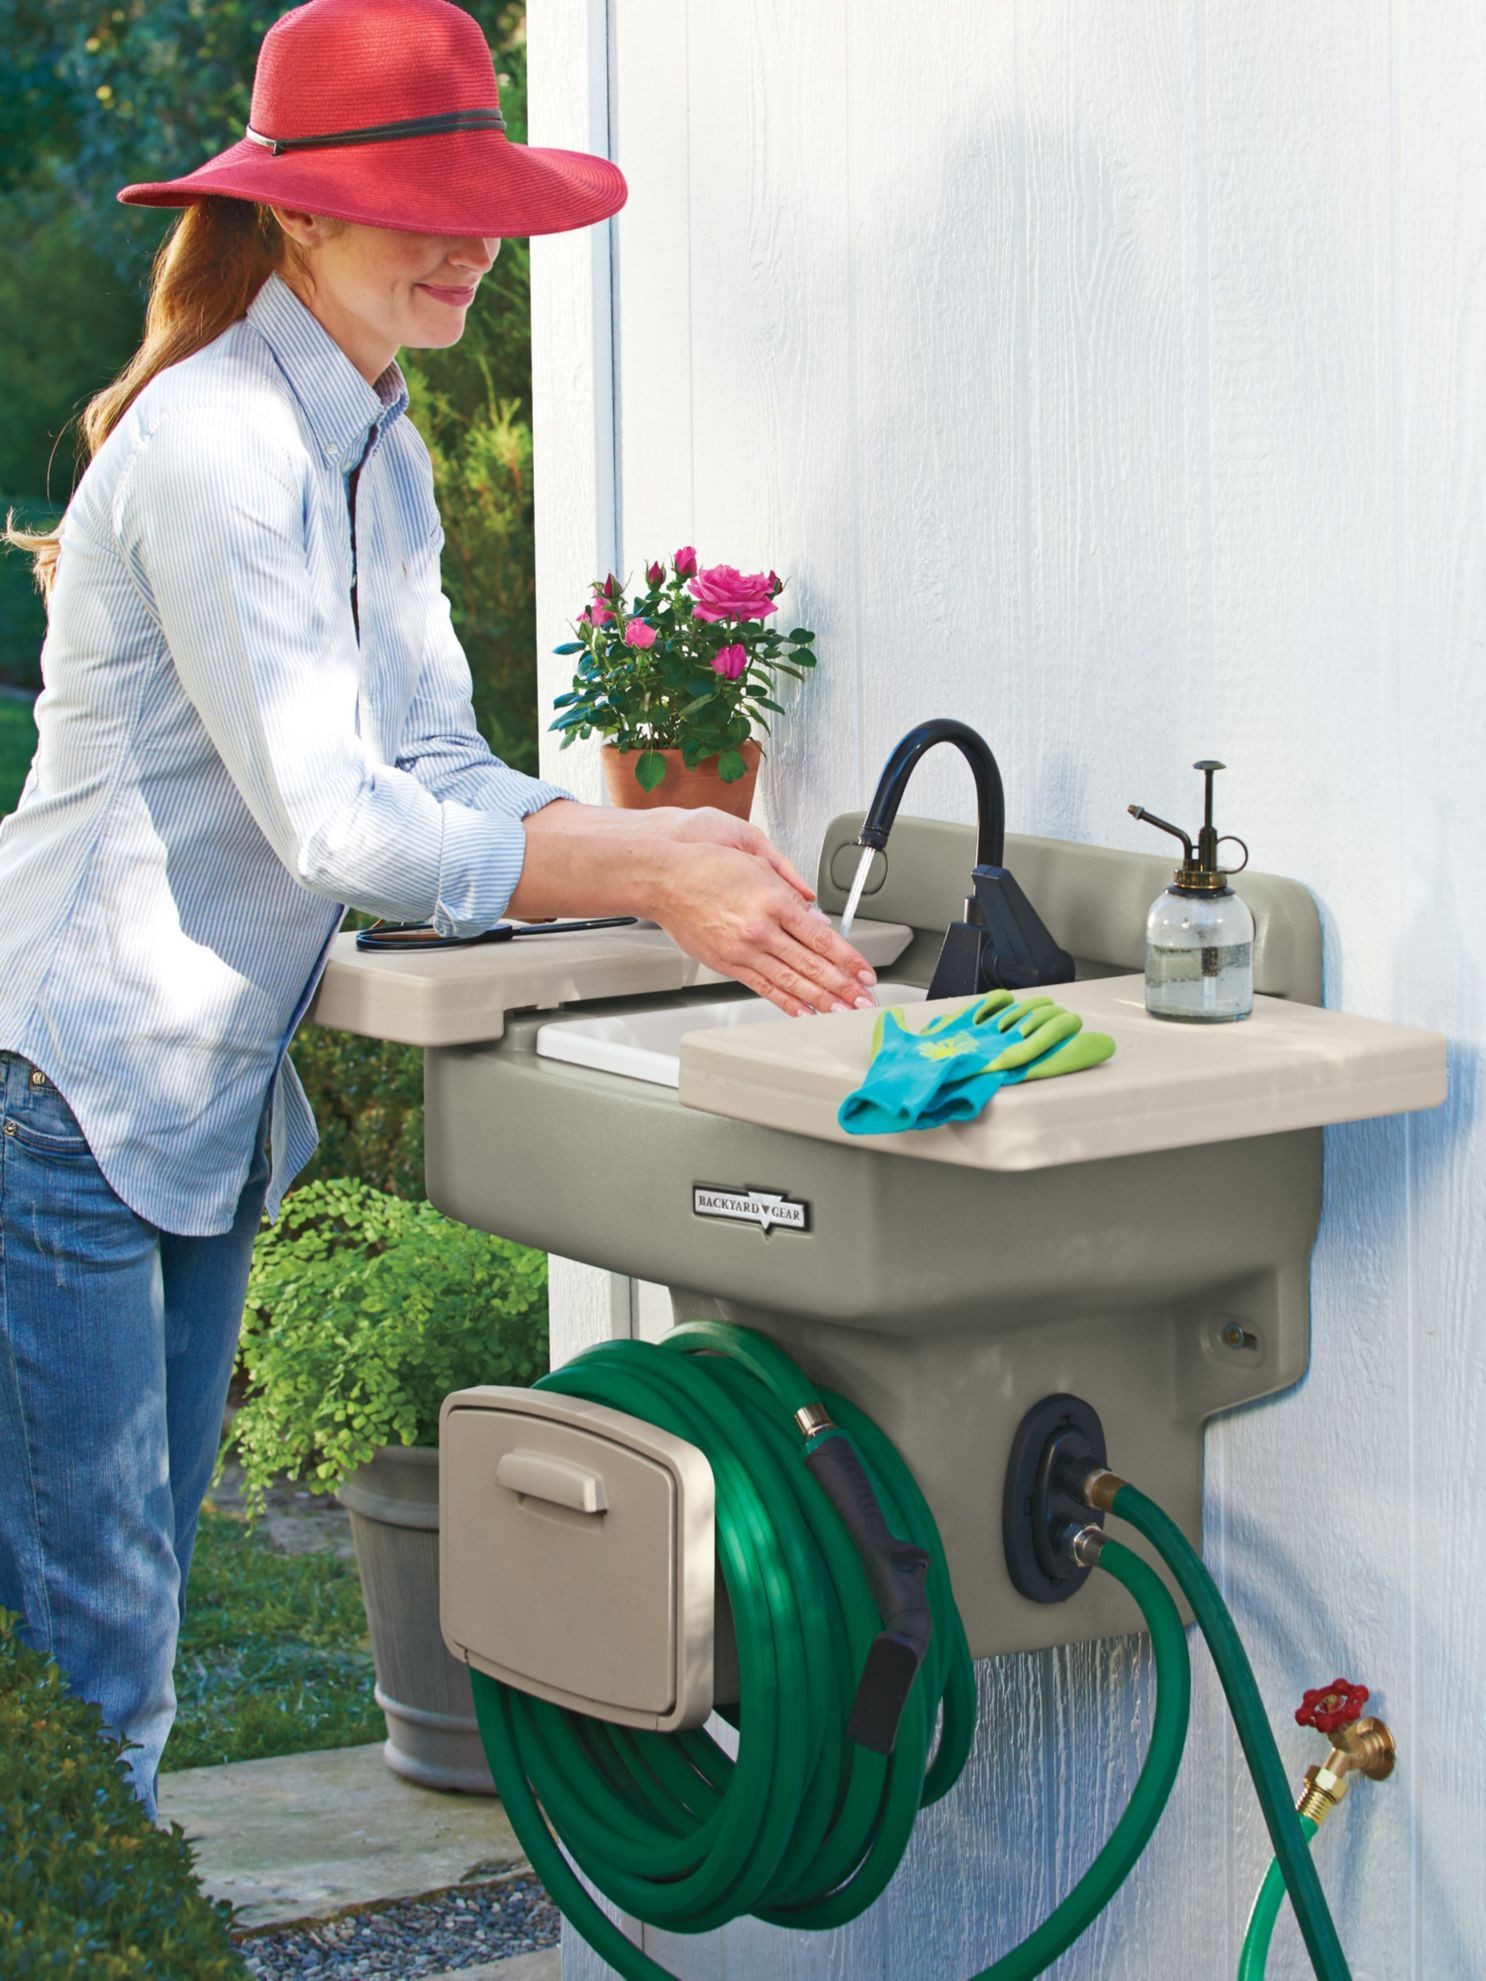 Set Up An Outdoor Workspace And Potting Bench Without A Plumber With Our Outdoor Sink Use For Cleanup When Gardening O Outdoor Sinks Garden Sink Potting Bench